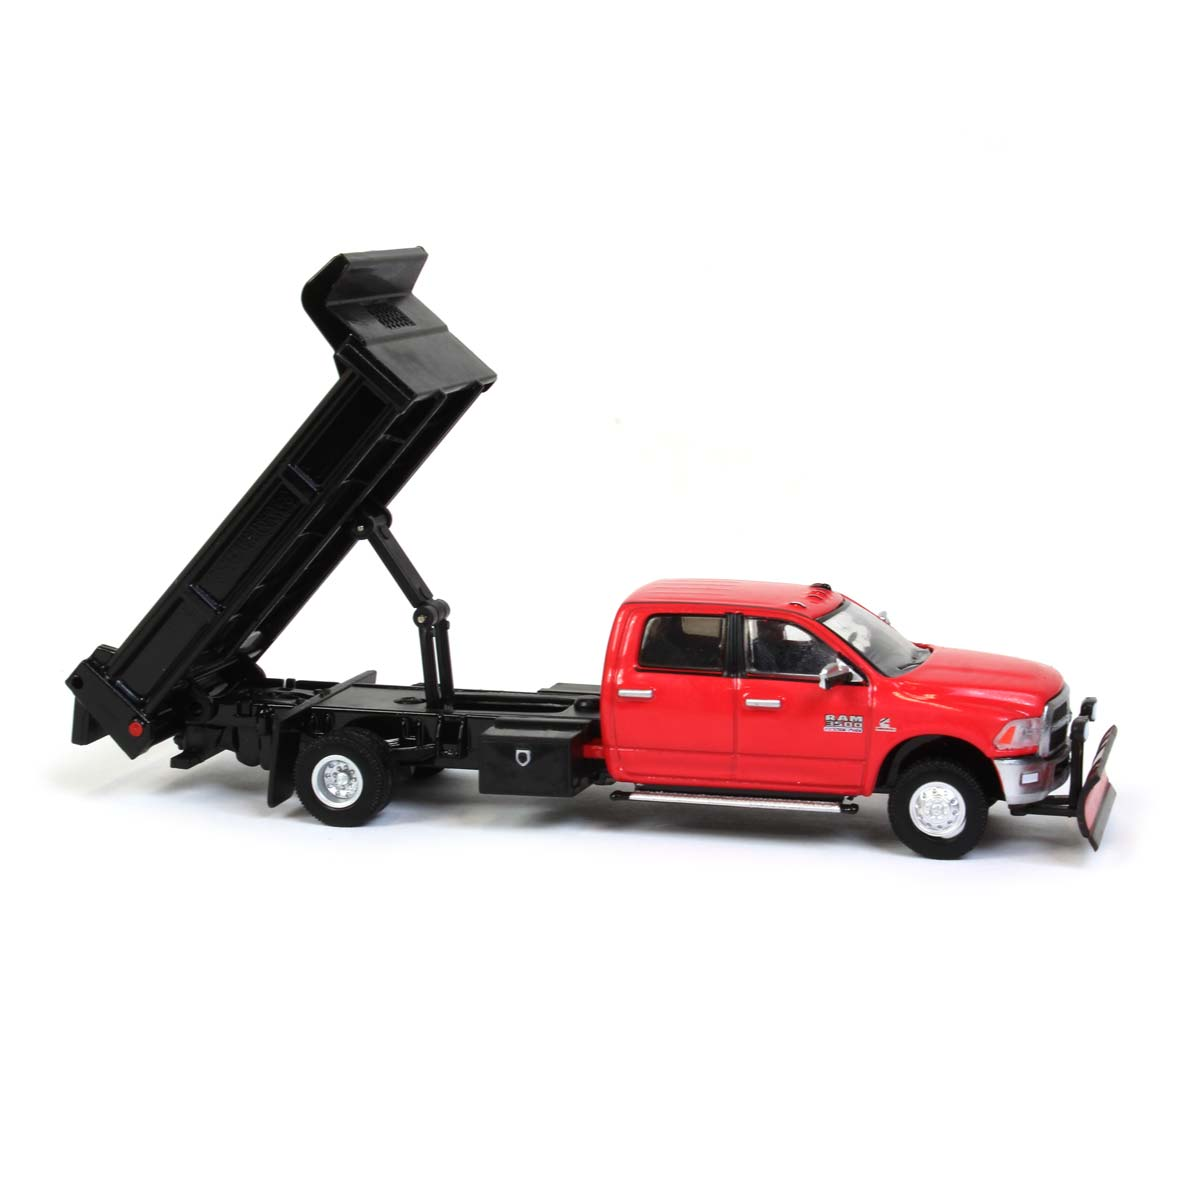 1:64 Greenlight RAM 3500 Dually with Stake Bed Outback Toys Exclusive 51296-A